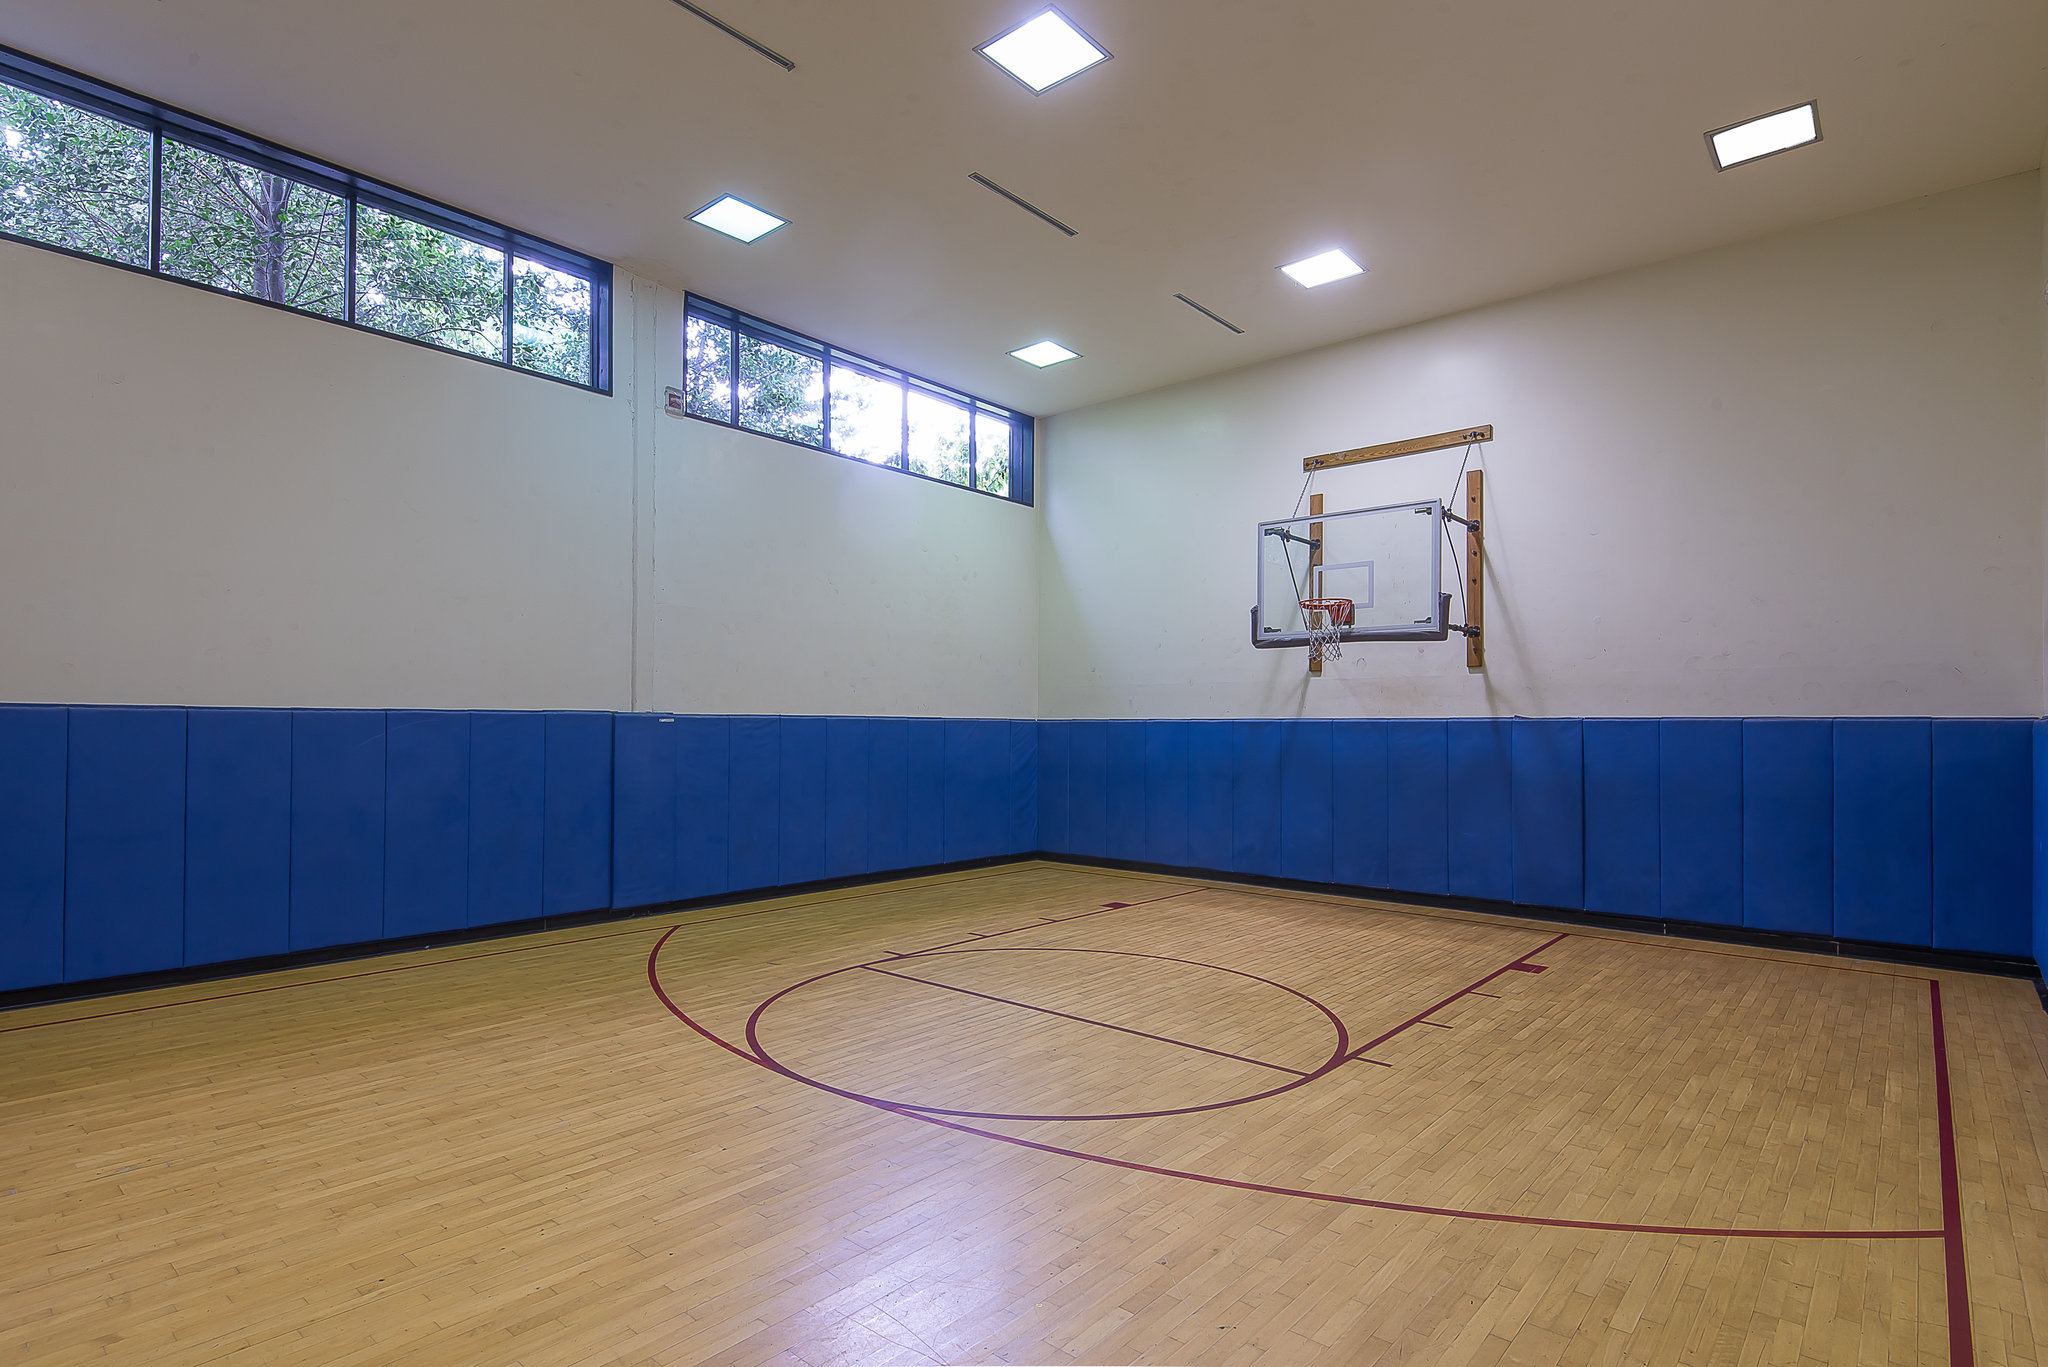 الإيمان زر مأساة Indoor Basketball Courts In South Jersey Picturemydress Com